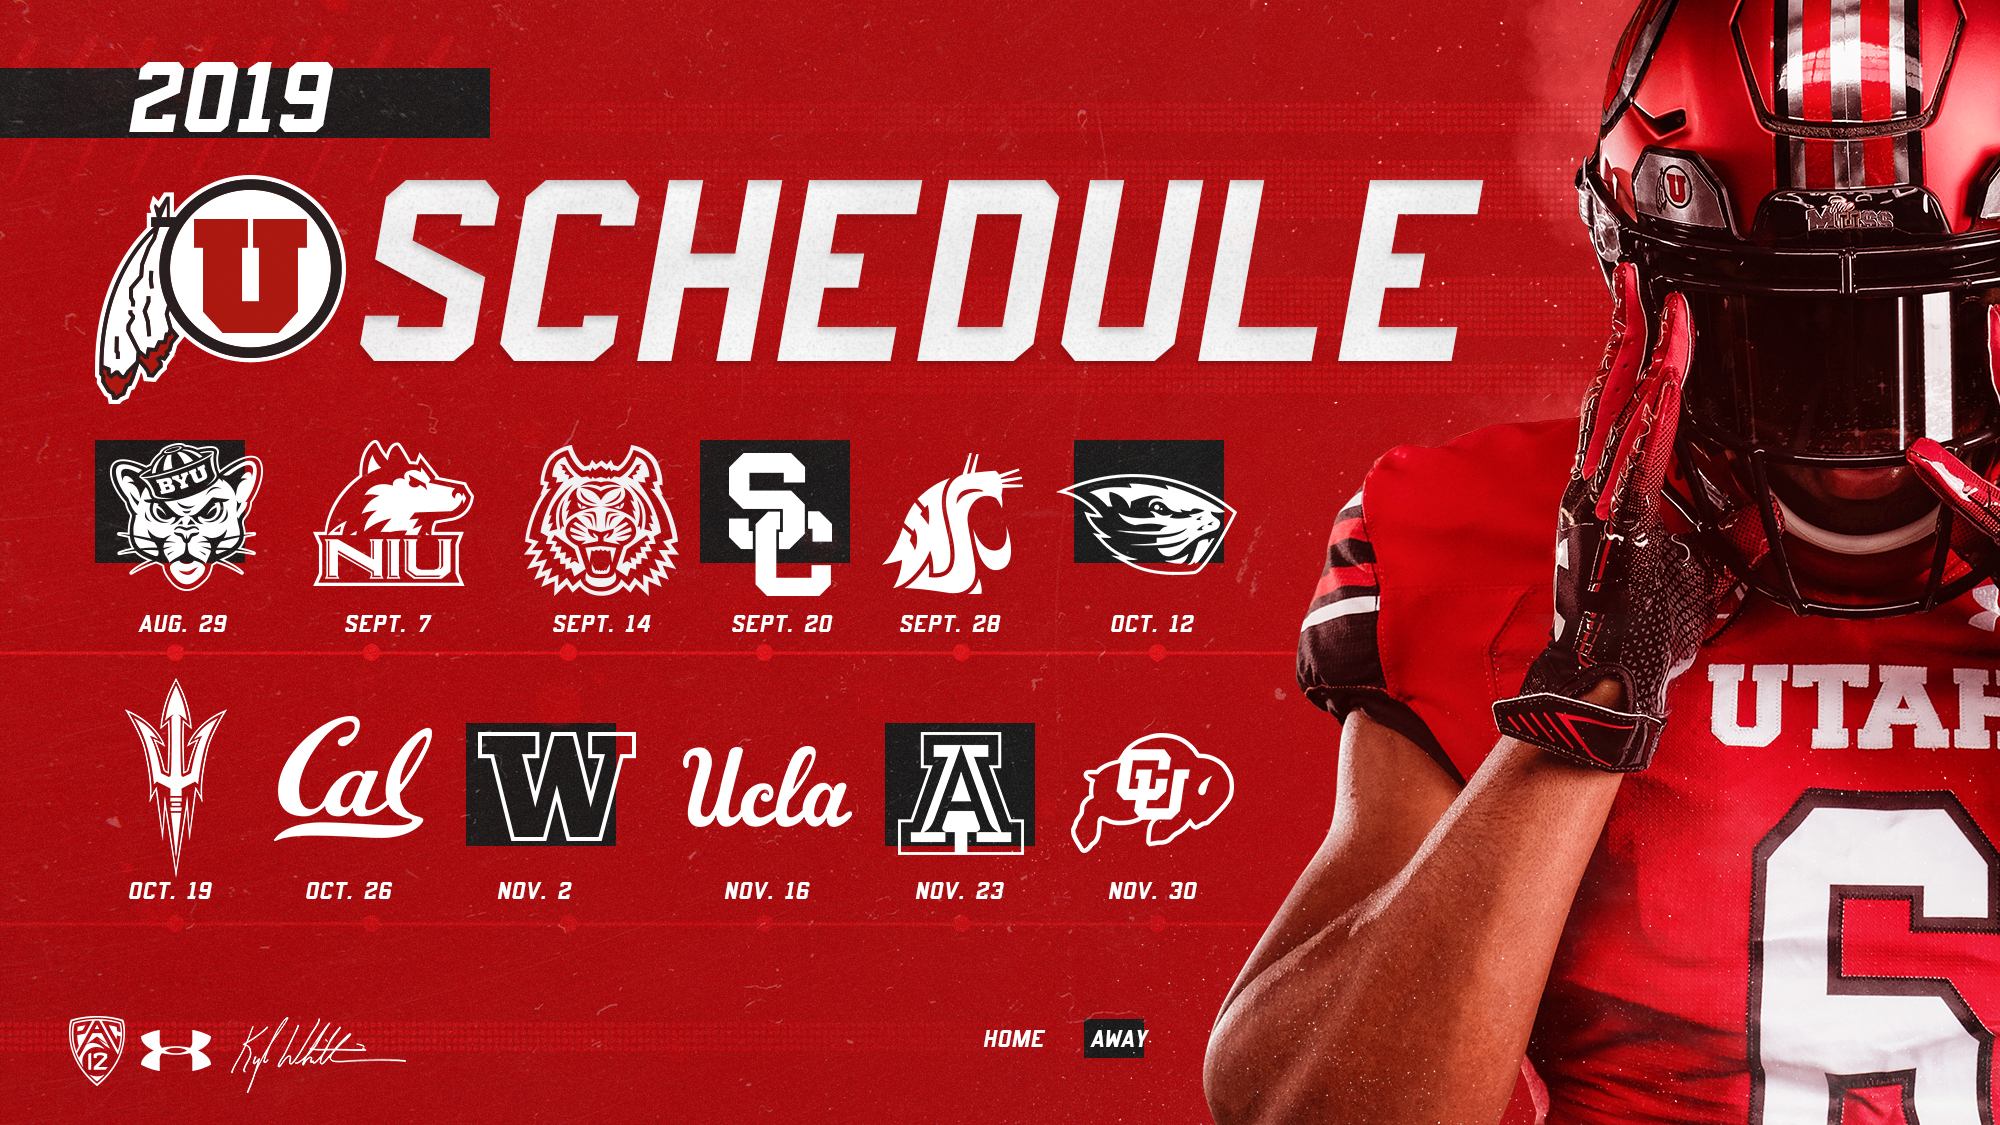 Oregon State Football Schedule 2020.2019 Utah Football Schedule Is Announced University Of